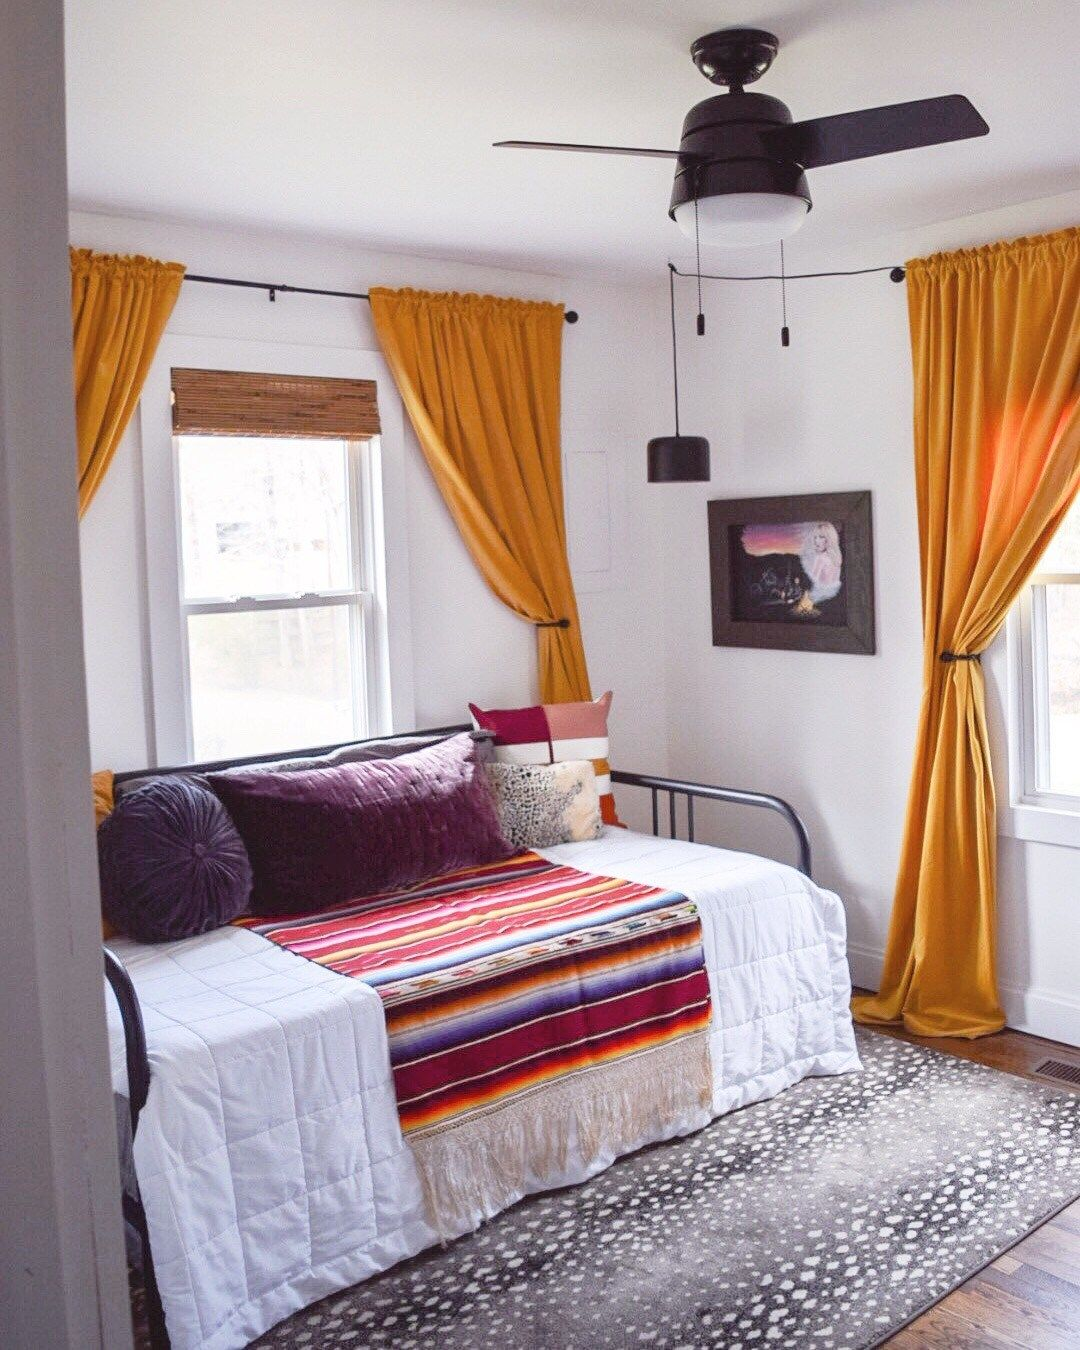 Bright And Bold Guest Bedroom: Budget, DIY, Colorful Guest Room Makeover